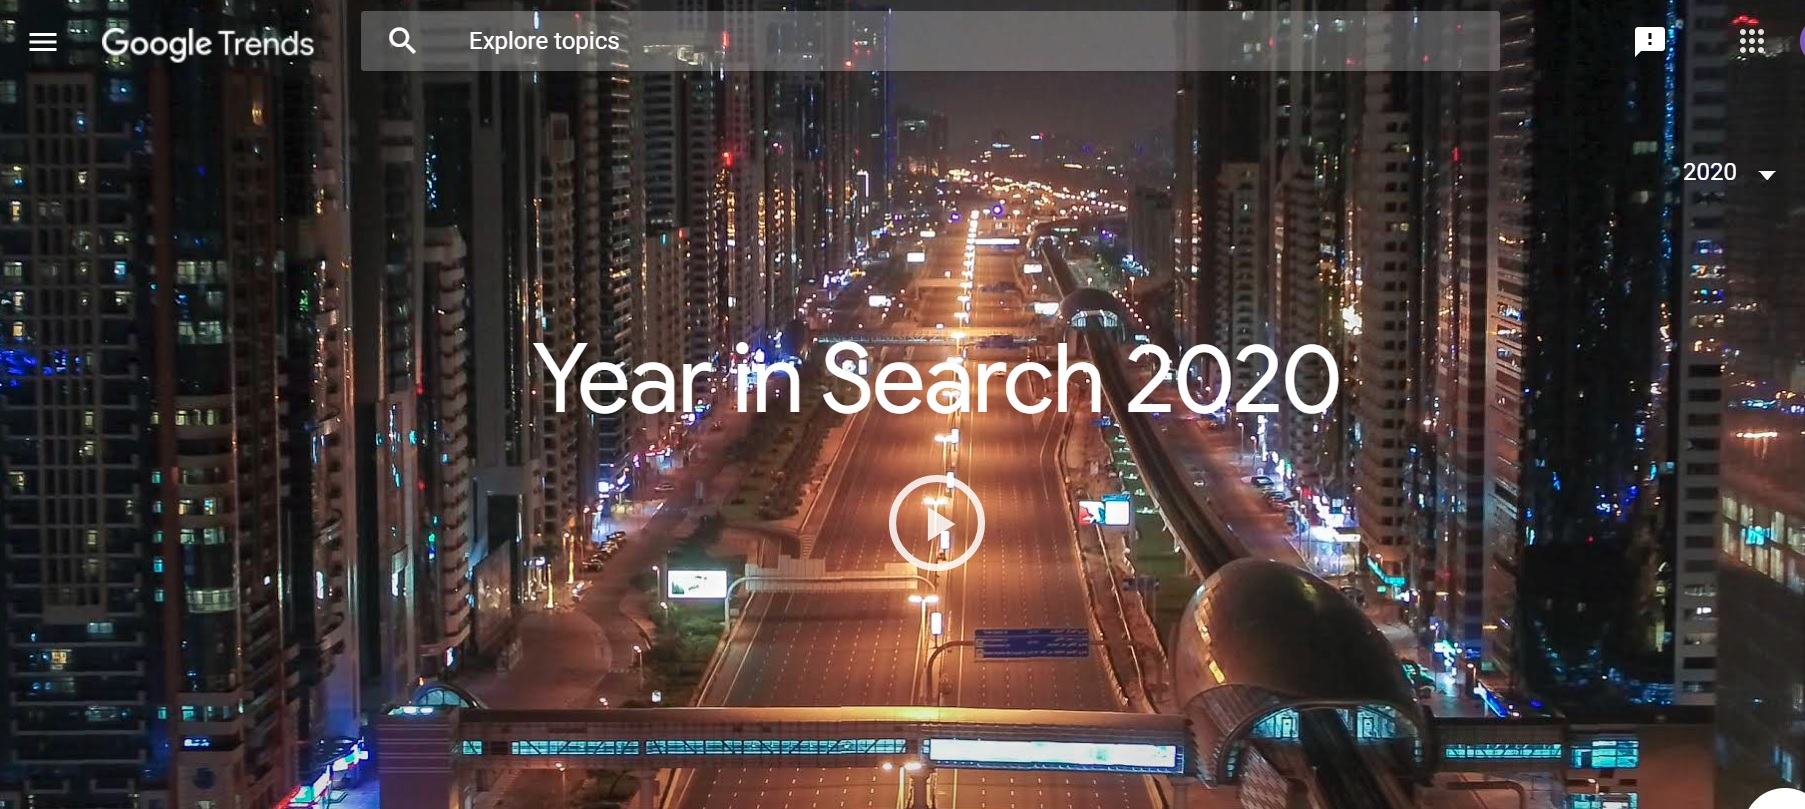 Google Top Searches 2020 - The Year of